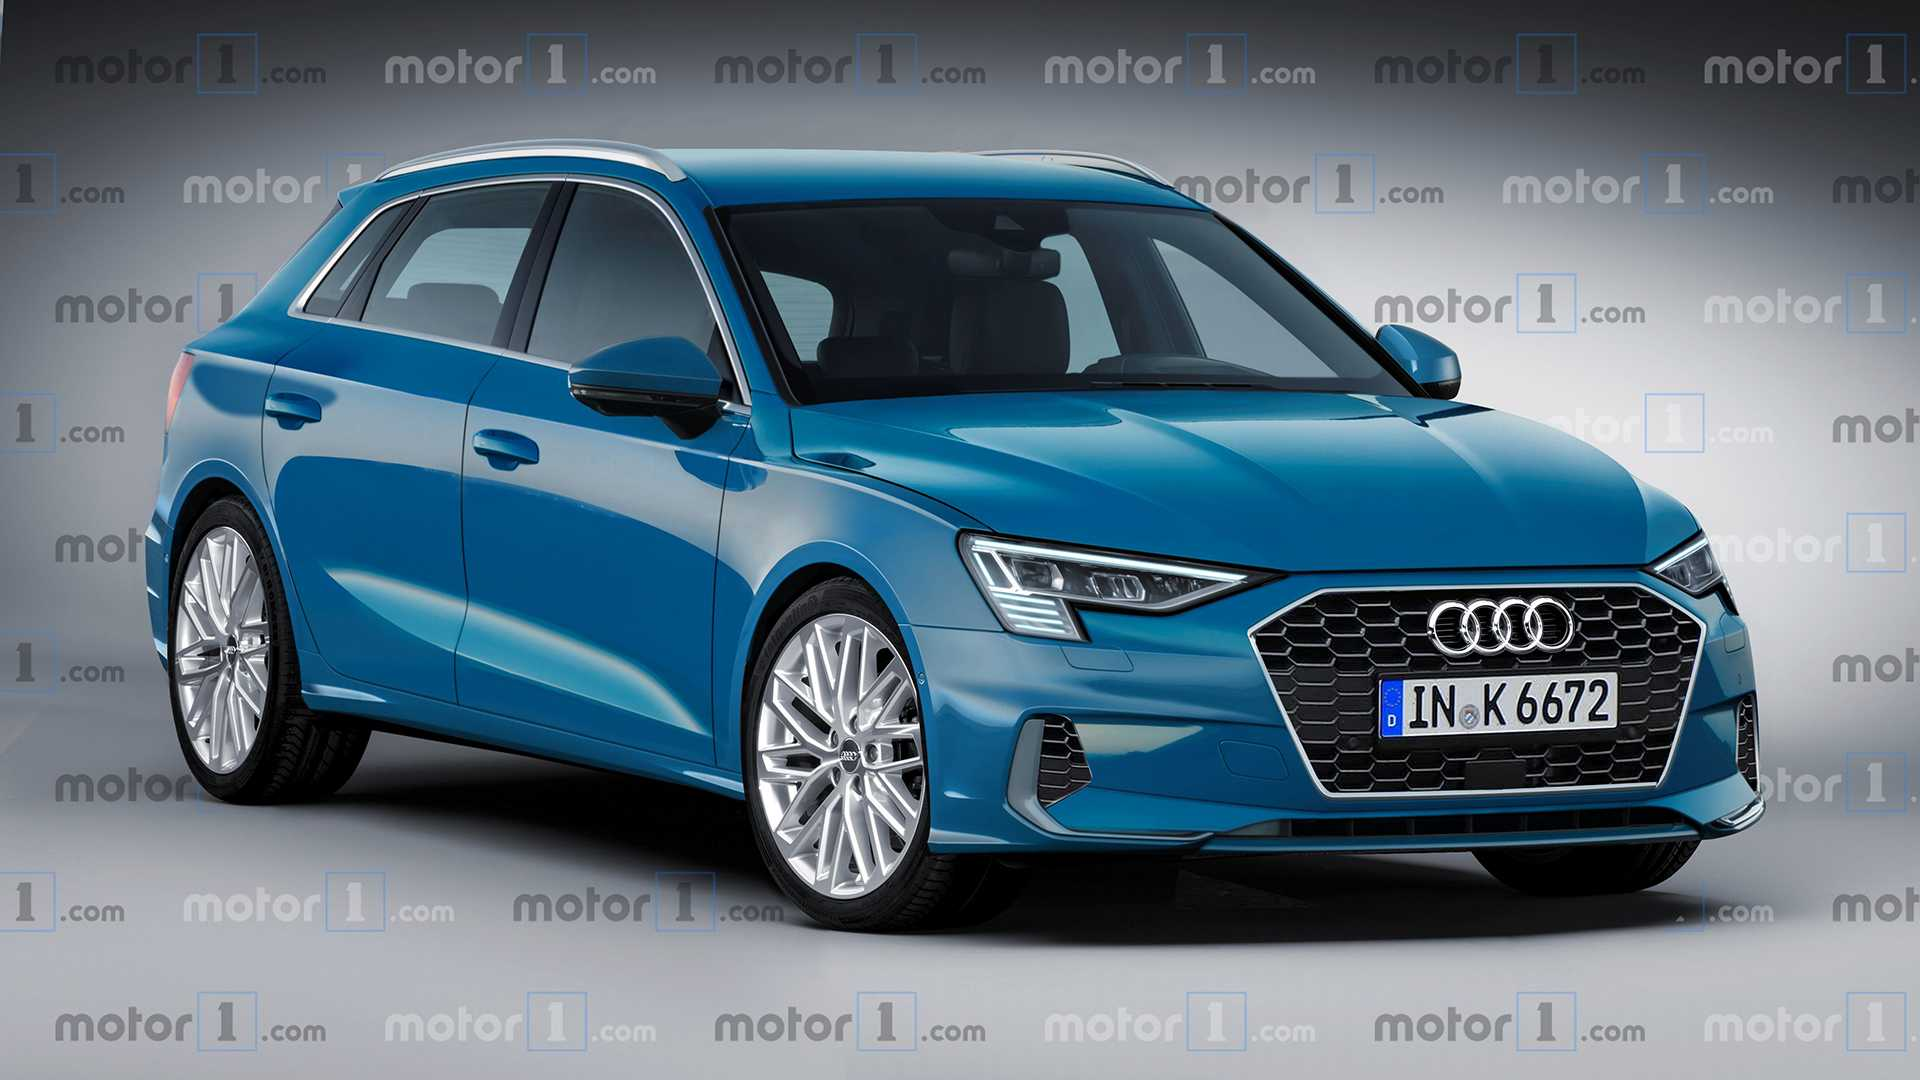 77 All New Audi S3 2020 Price